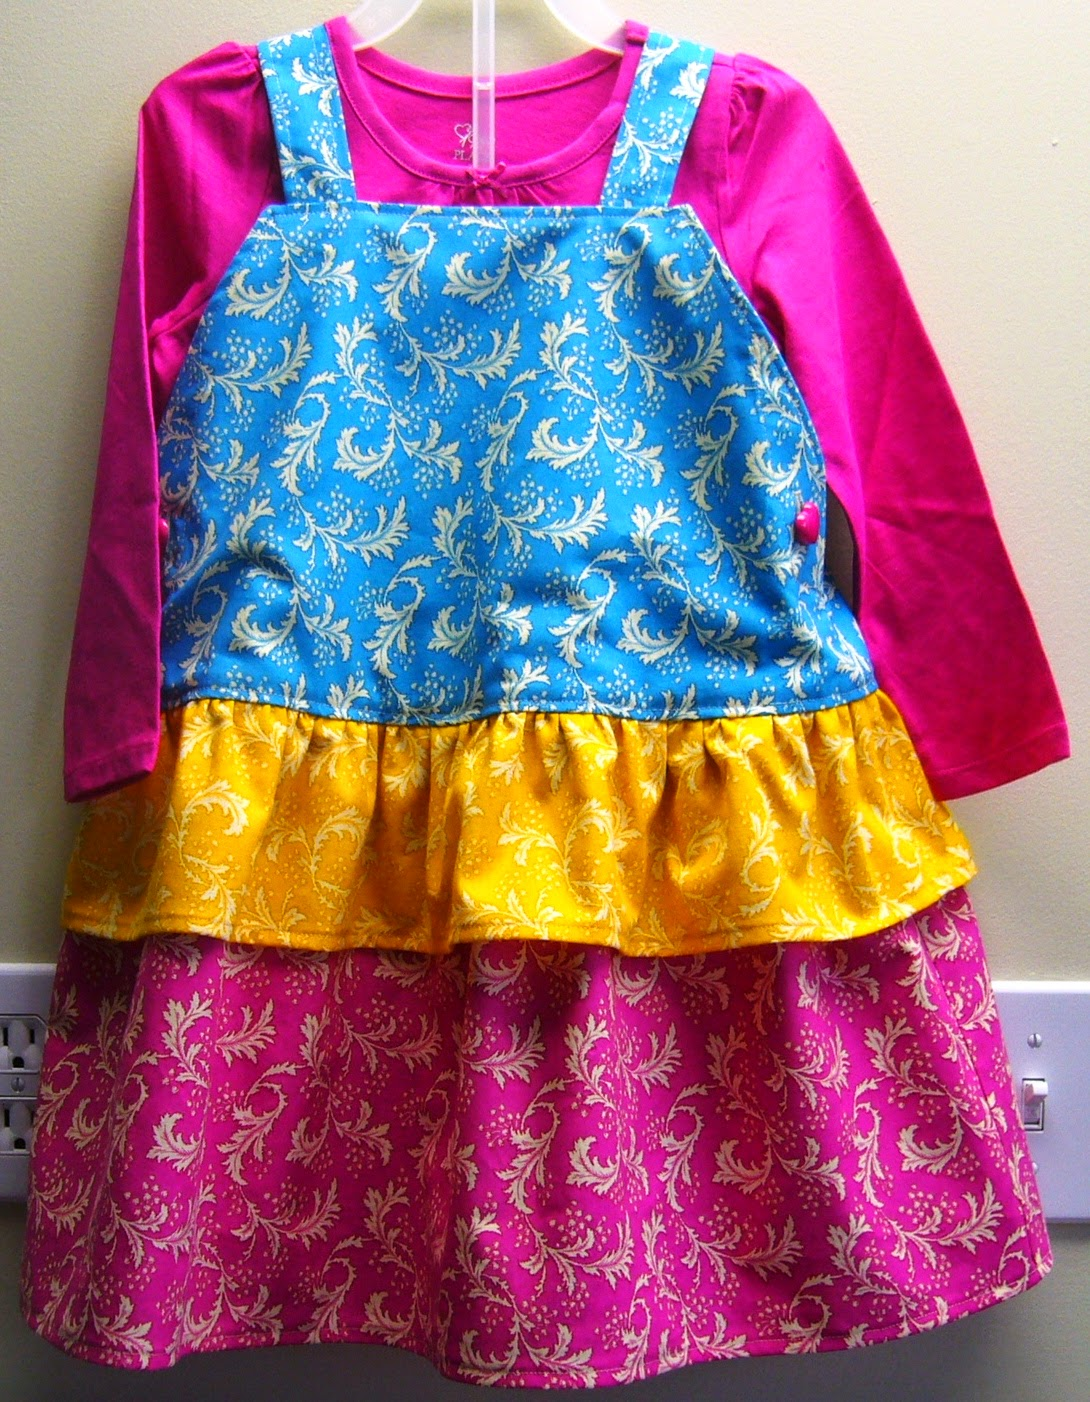 See & Sew Dress for an Operation Christmas Child shoebox.